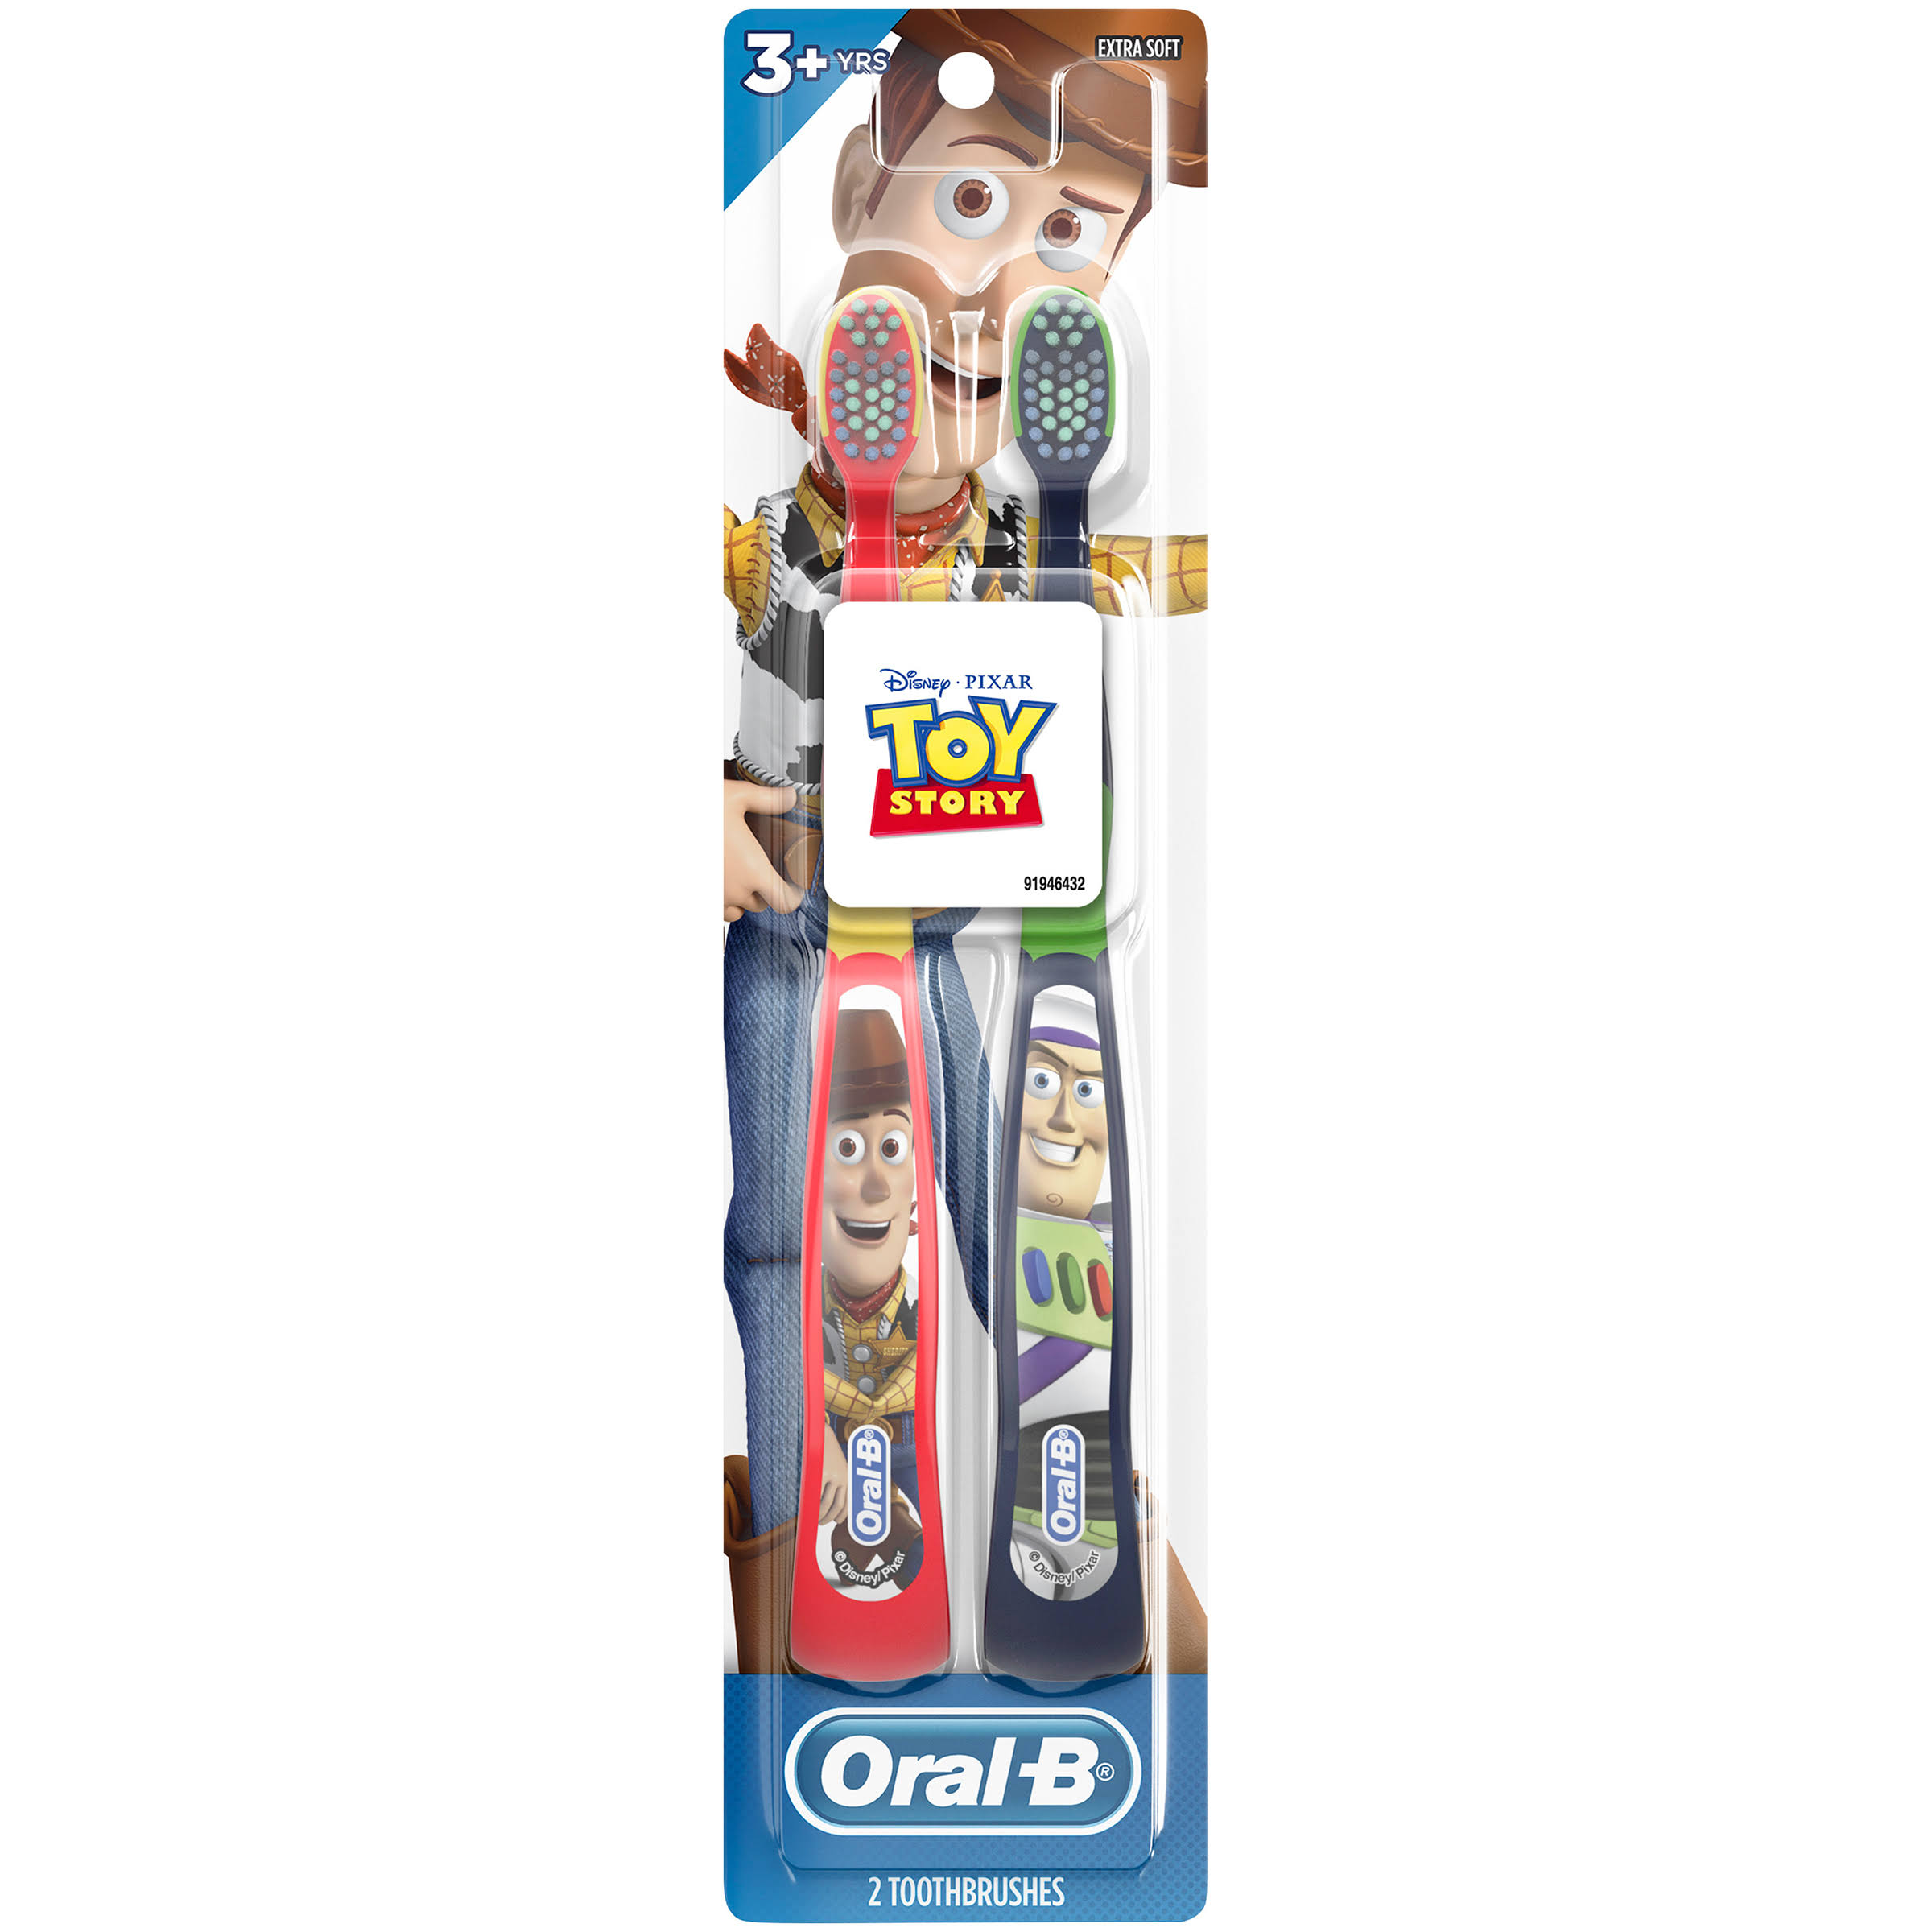 Oral-B Kids Manual Toothbrush Featuring Disney & Pixar's Toy Story, Soft Bristles, for Children and Toddlers 3+, 2 Count